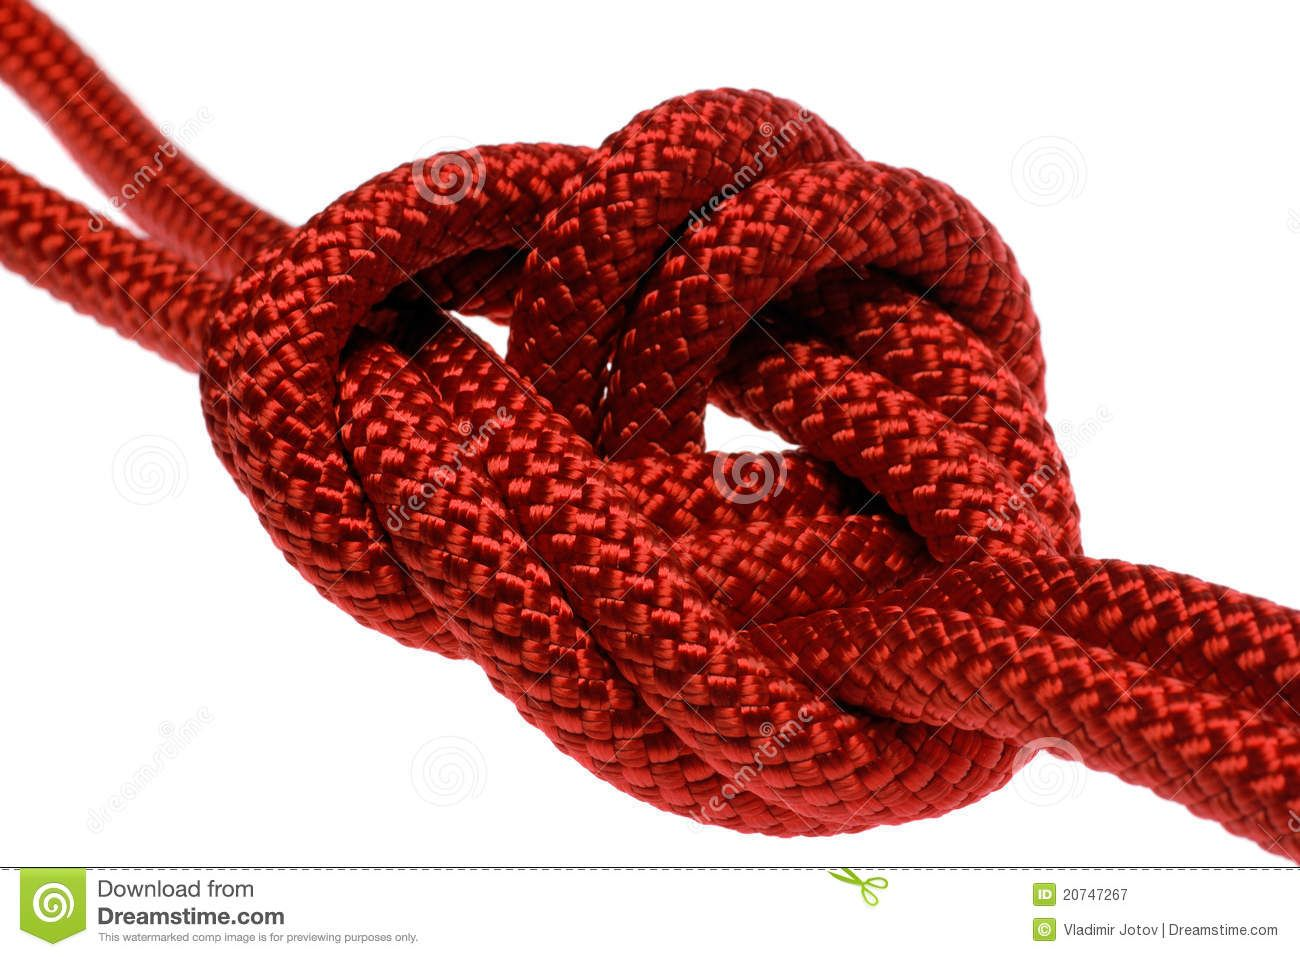 apocryphal-knot-double-red-rope-20747267.jpg (1300×957)